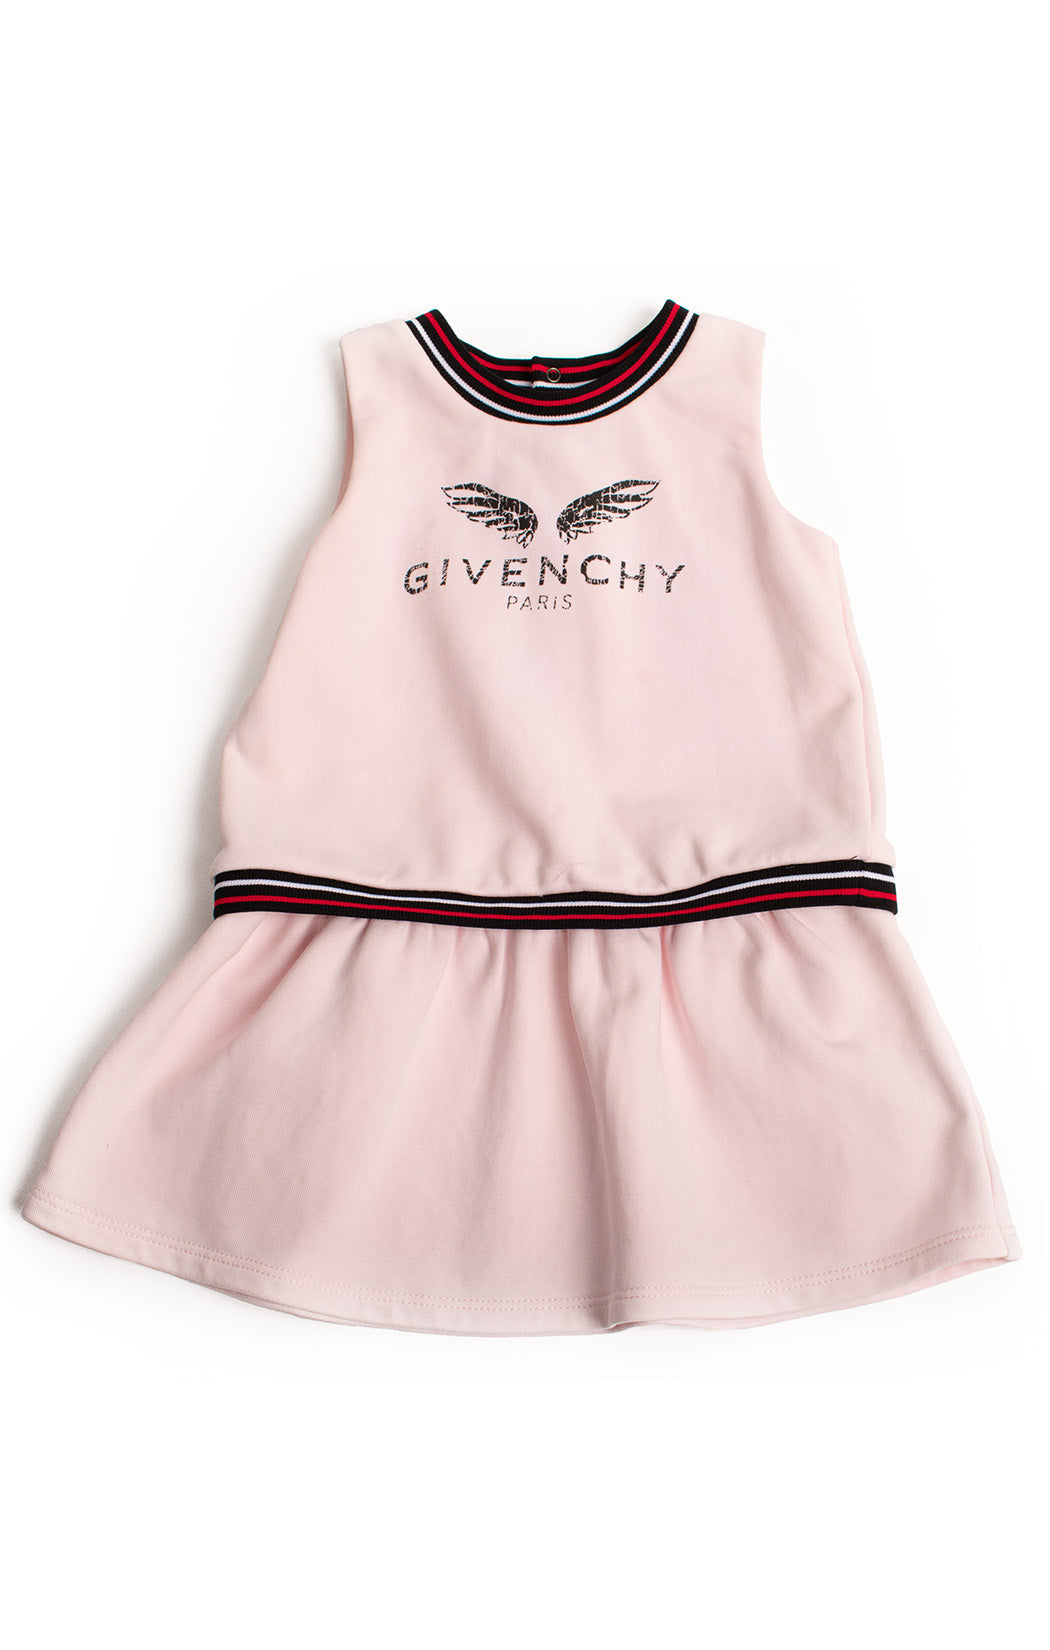 Front view of GIVENCHY Dress Size: 18 M